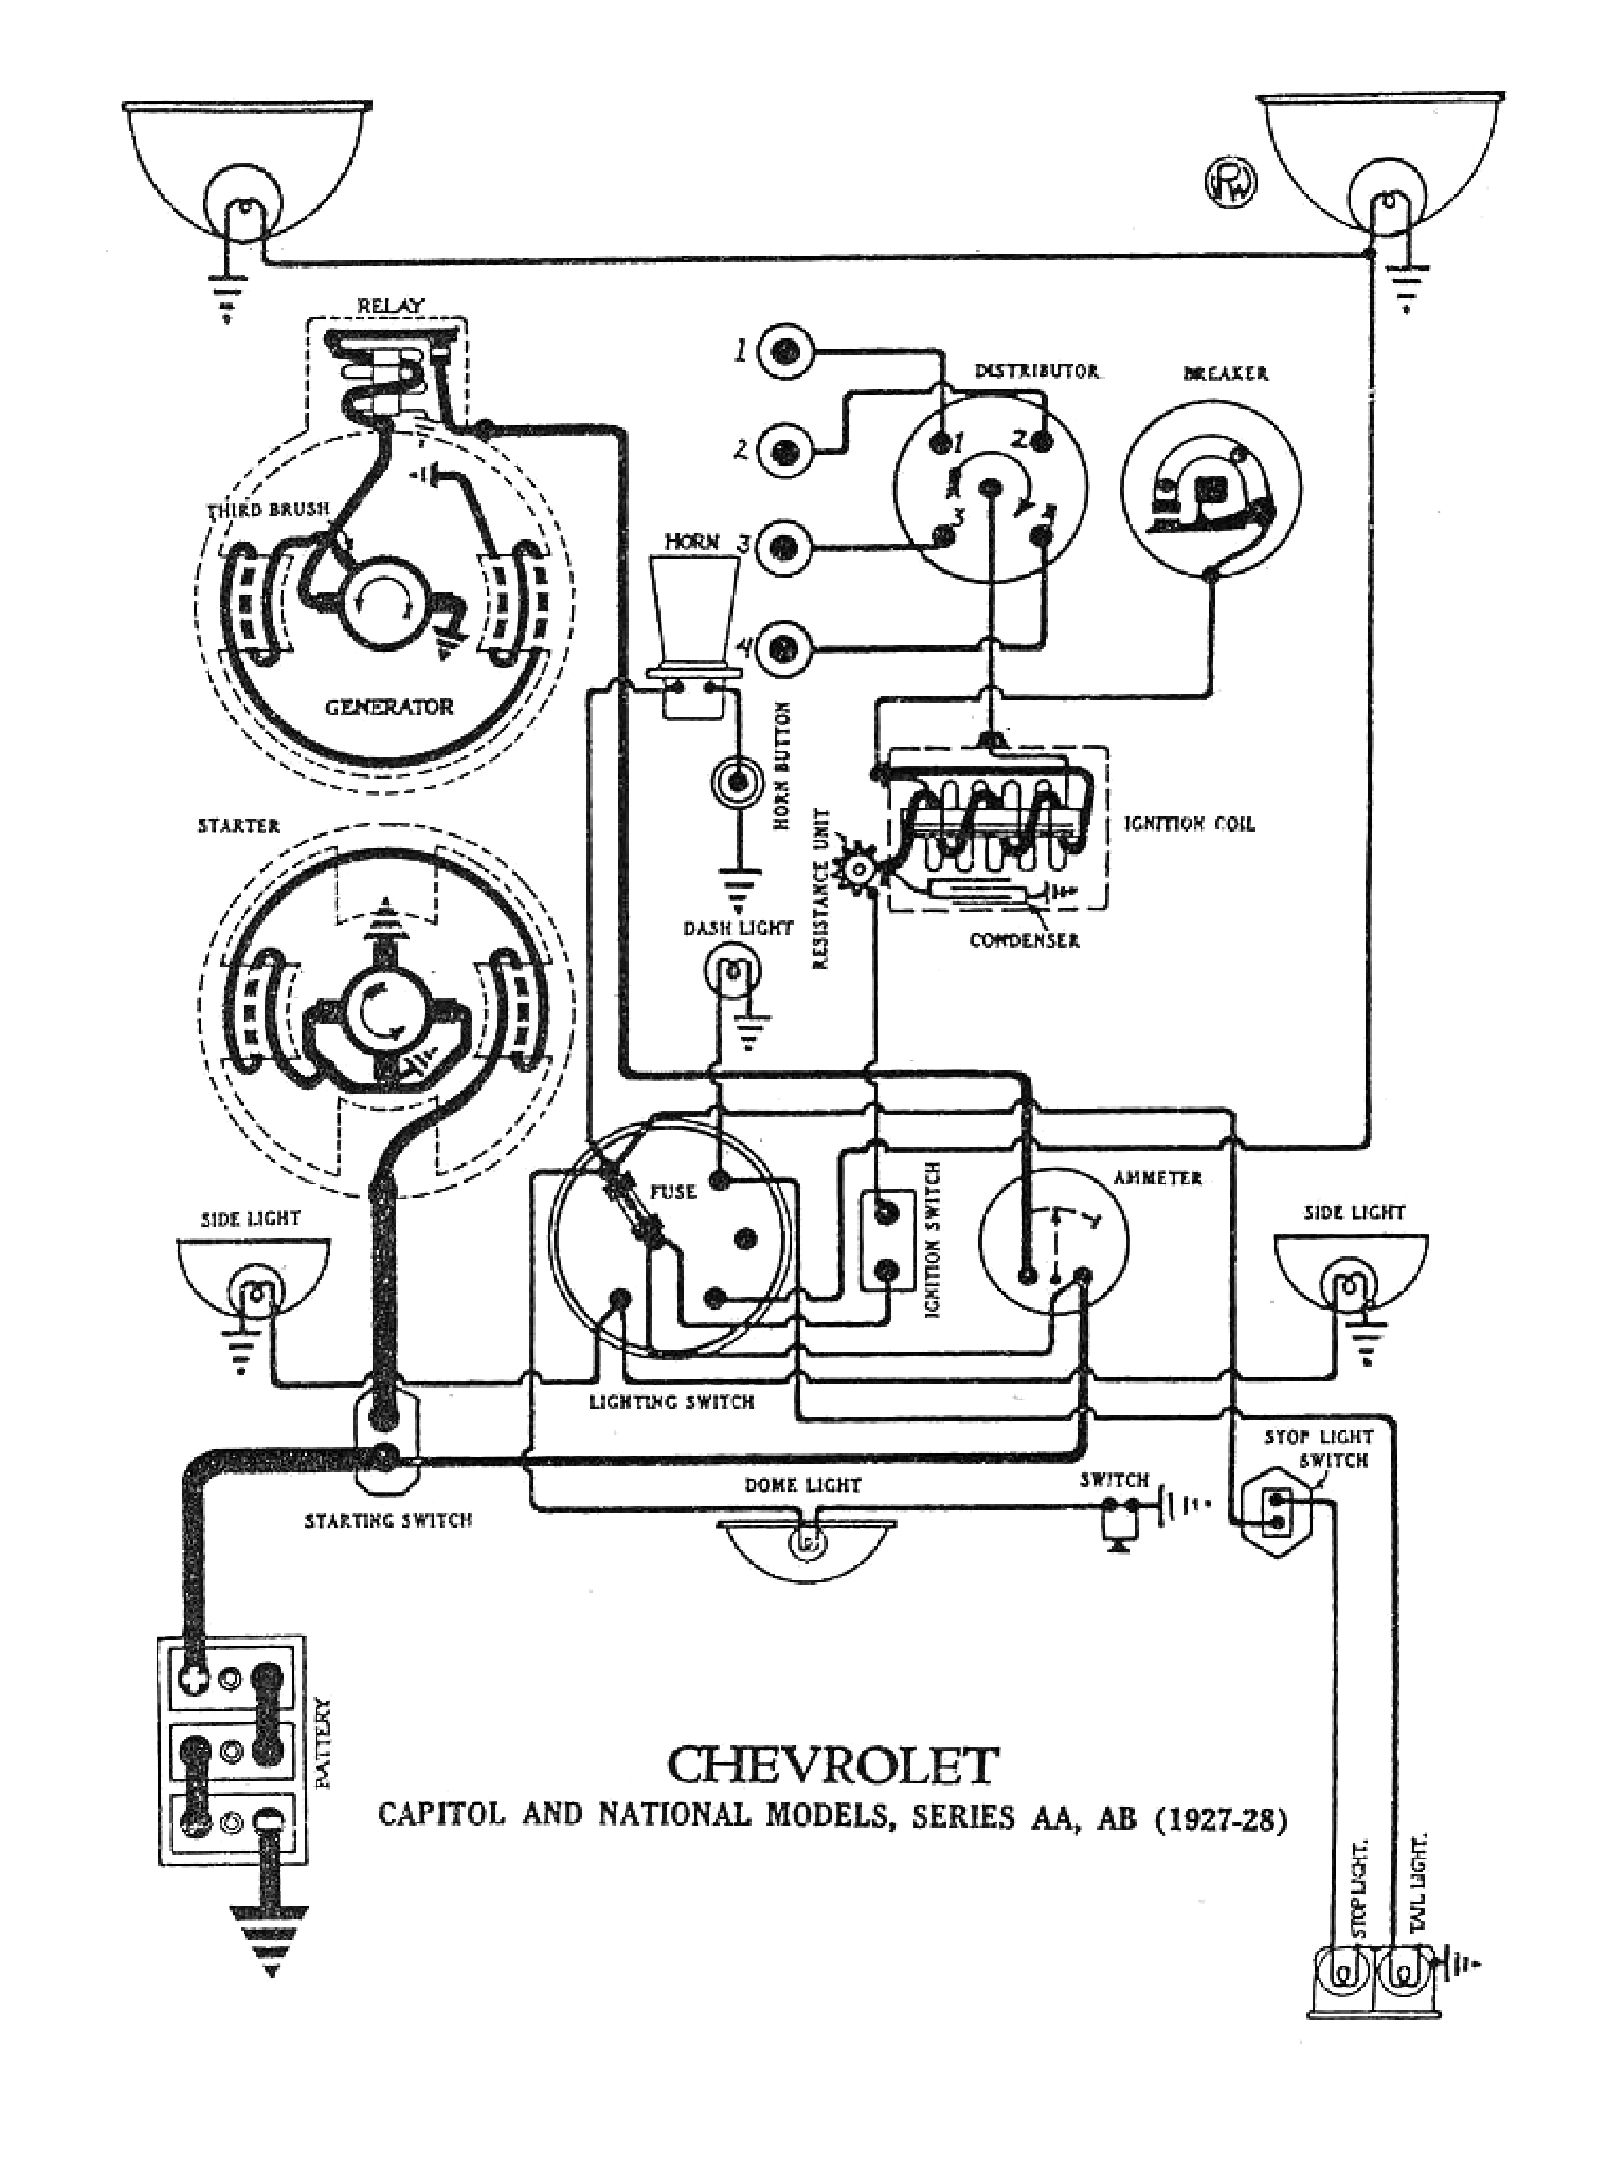 Ford Distributor Wiring Drawing Library. 1946 Ford Distributor Wiring Diagram Schematics 289 Coil Chevy Diagrams Electronic. Chevrolet. 1968 327 Chevy Distributor Wiring Diagram At Scoala.co